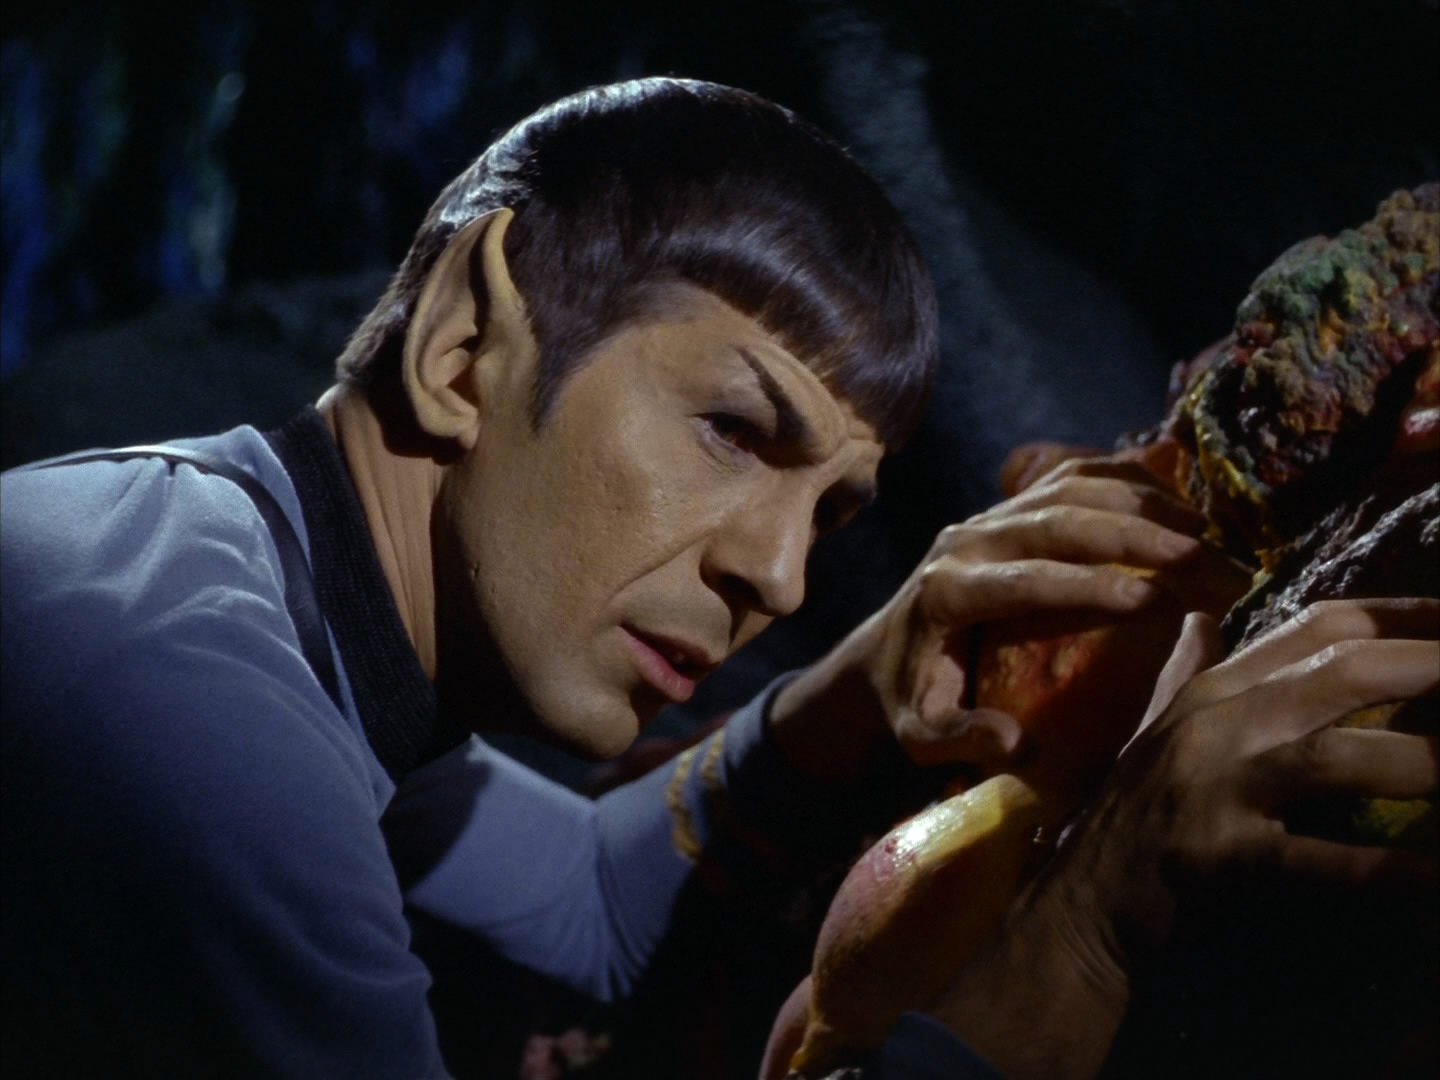 Mr. Spock's Alternative for Knowledge Transfer